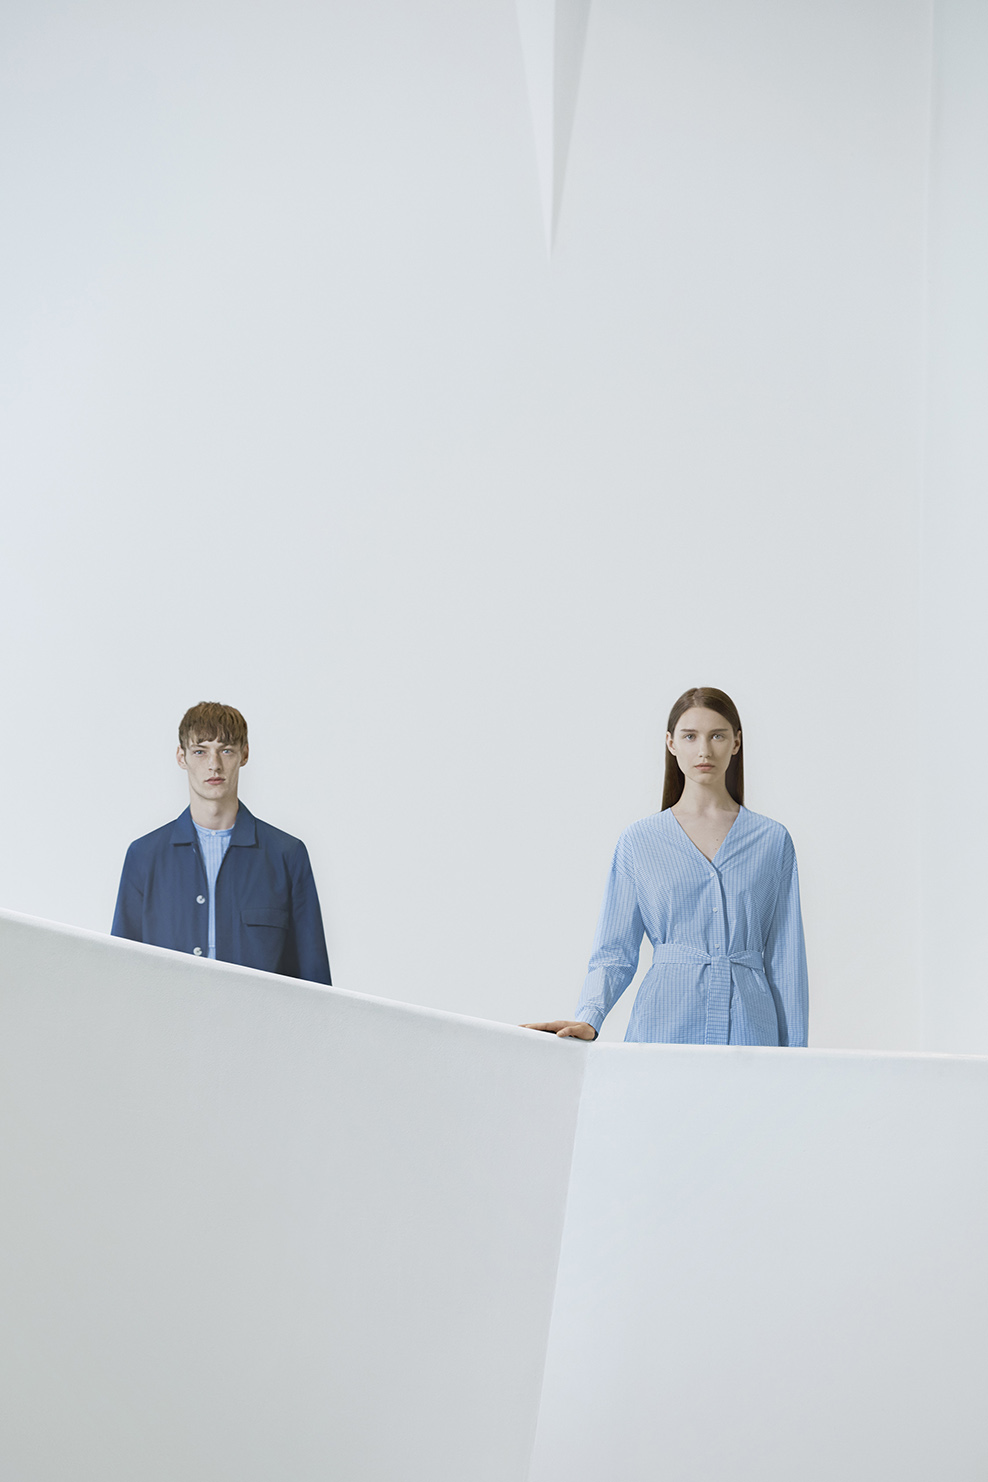 cos-agnes-martin-guggenheim-fw2016-lookbook-mens-womens-6